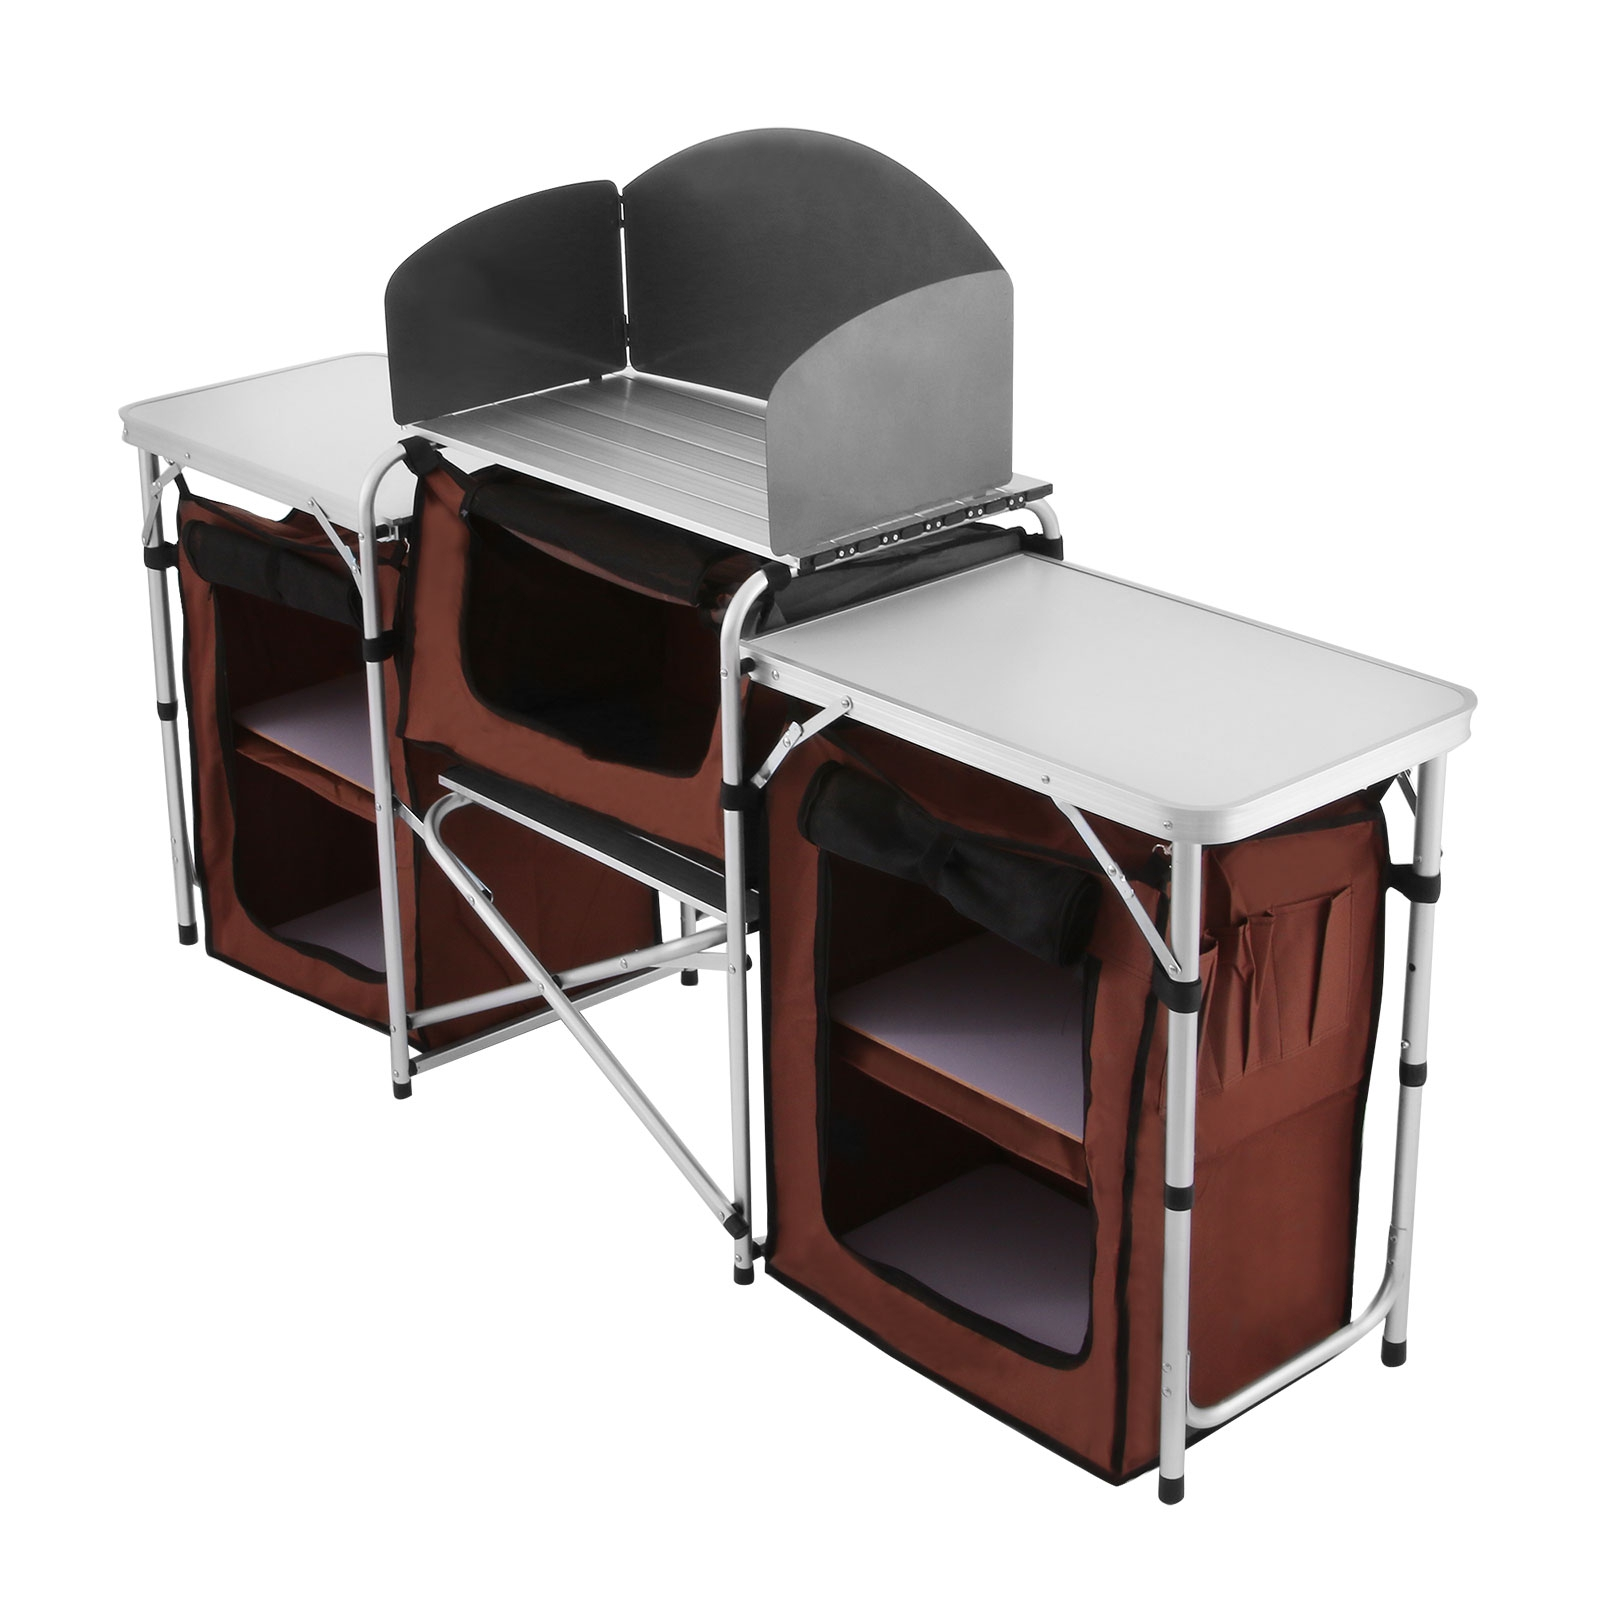 Camping Kitchen Table: Cabinet Camping Kitchen Portable Picnic Table Cooking Food